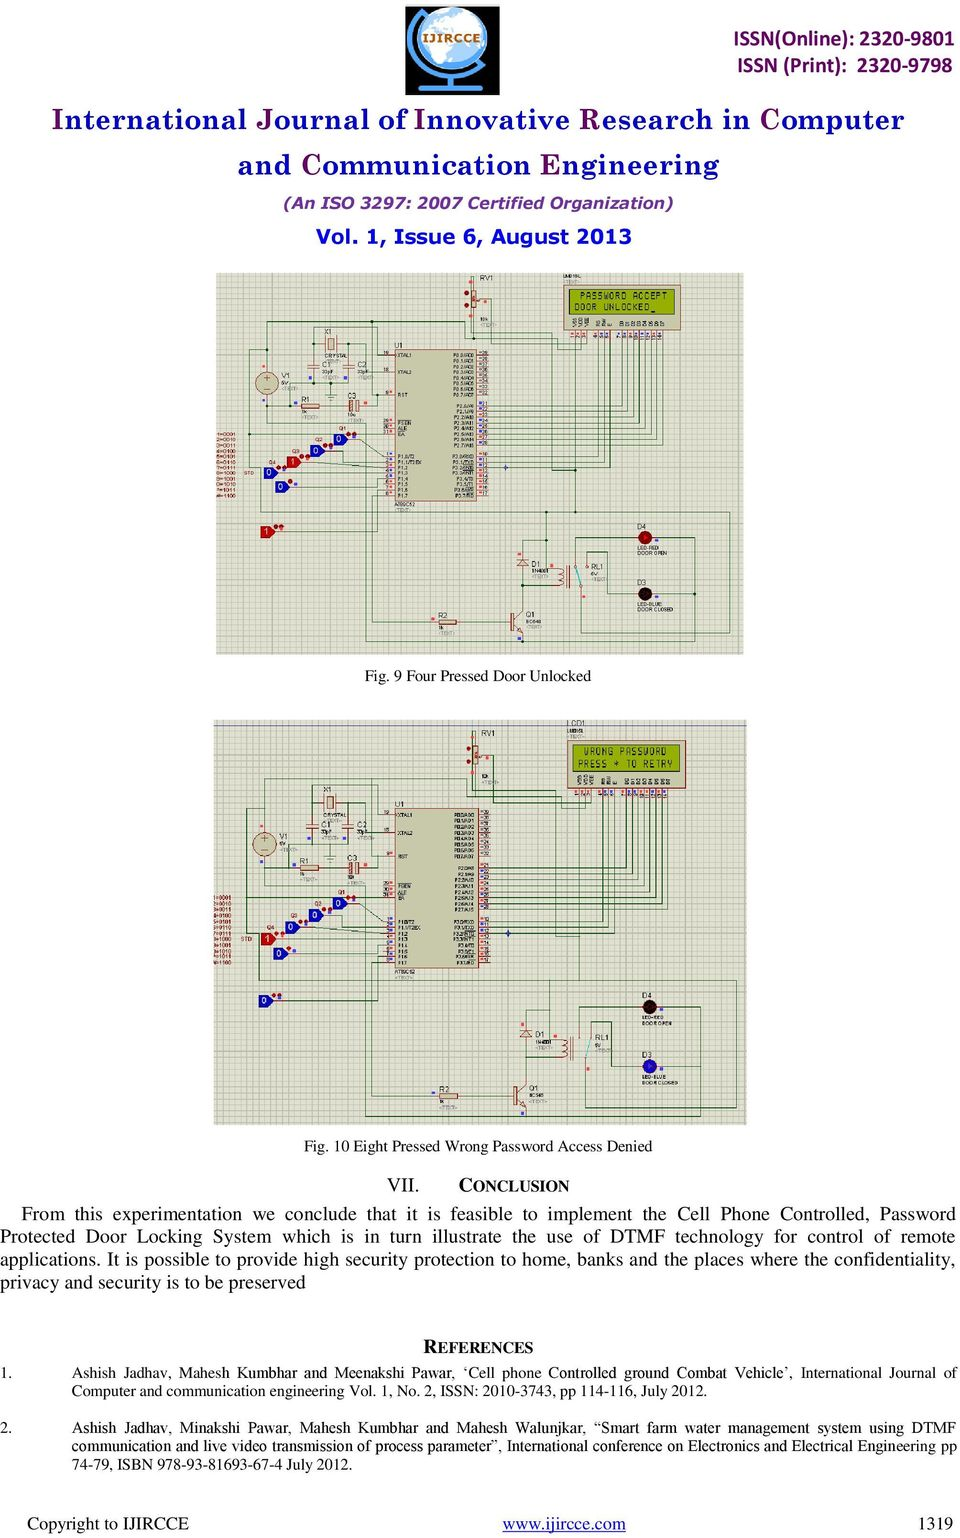 Feasibility Study Of Implementation Cell Phone Controlled Dtmf Based Home Automation Project With Circuit Diagram Technology For Control Remote Applications